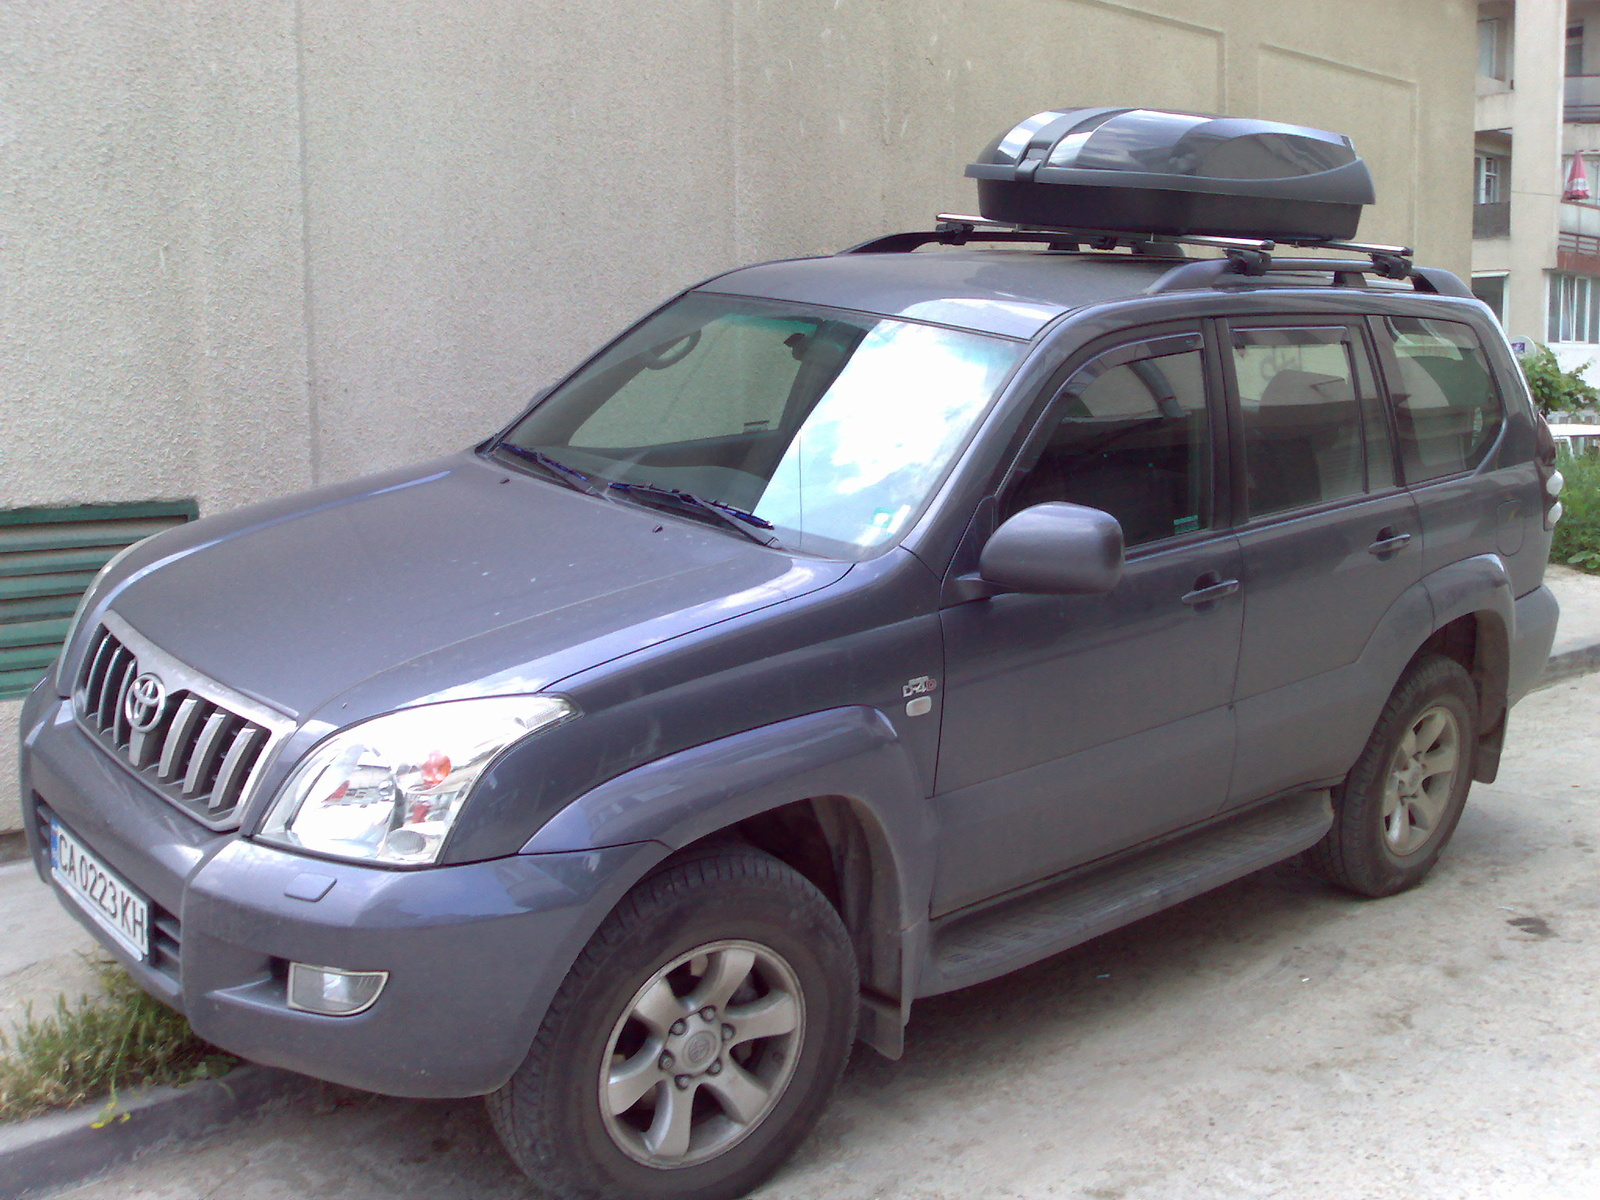 2007 Toyota Land Cruiser picture